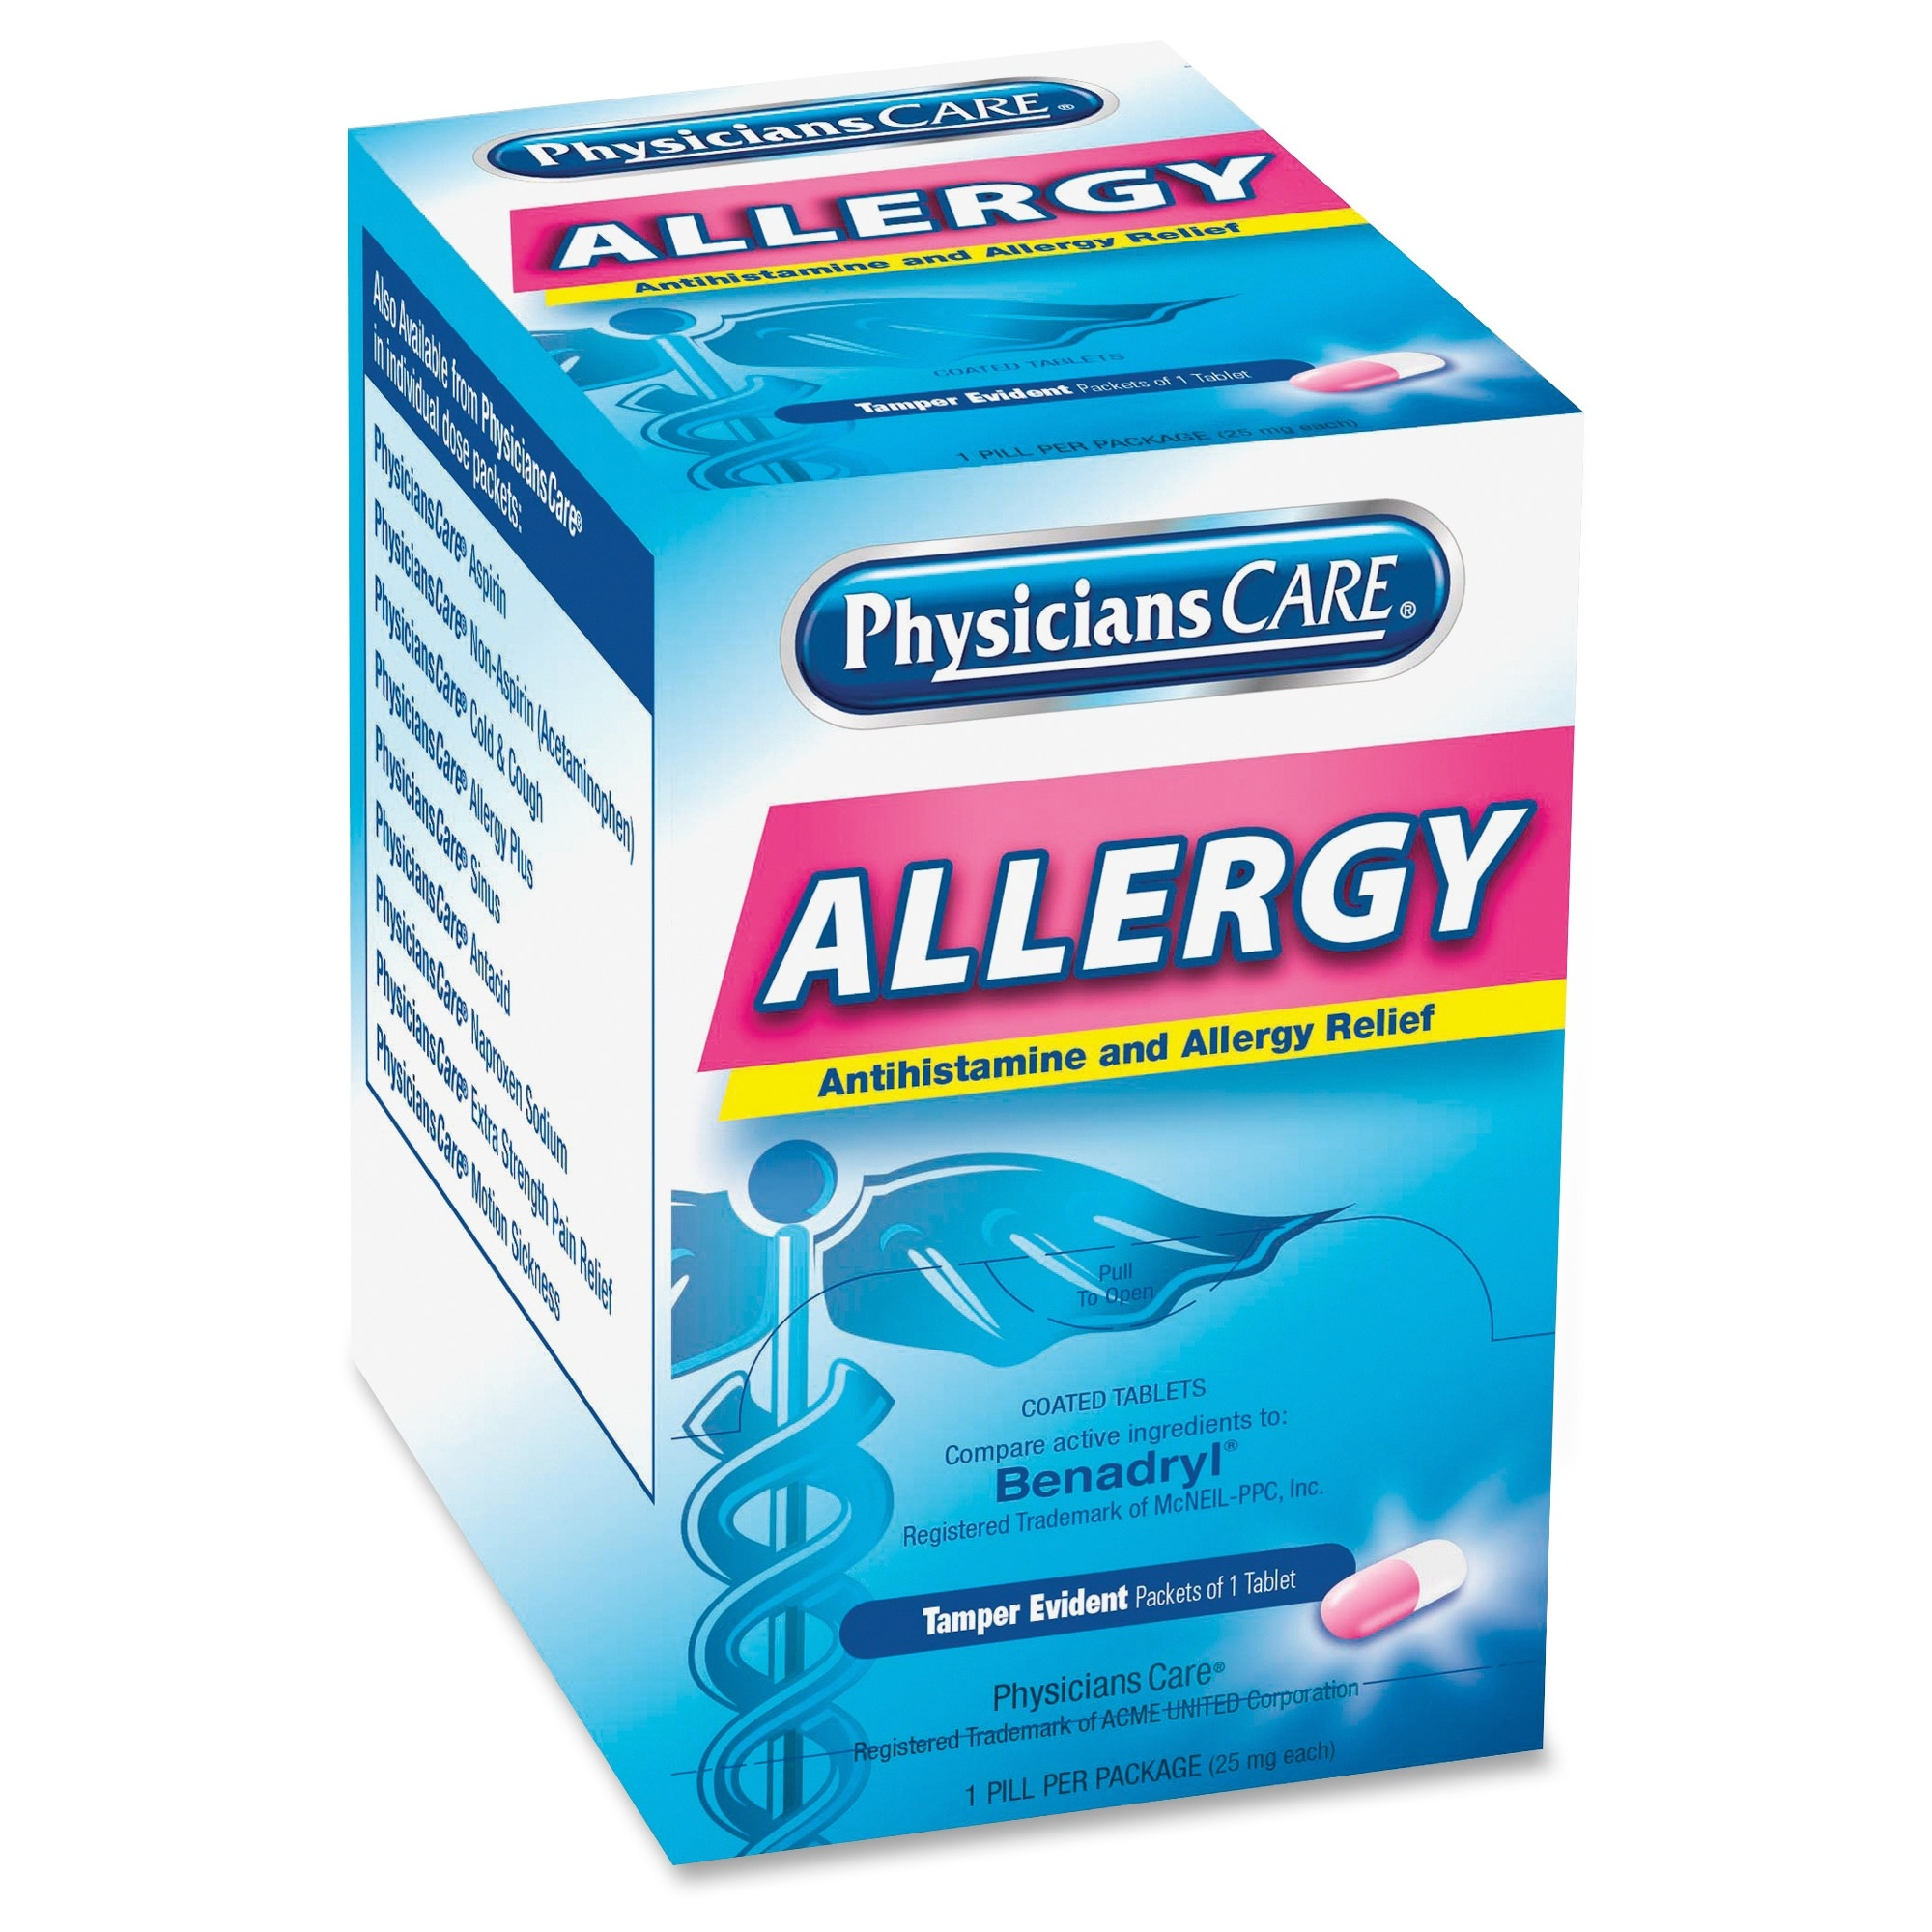 Physicianscare Allergy Relief Tablets - Allergy - 50 / Box (acm-90036)